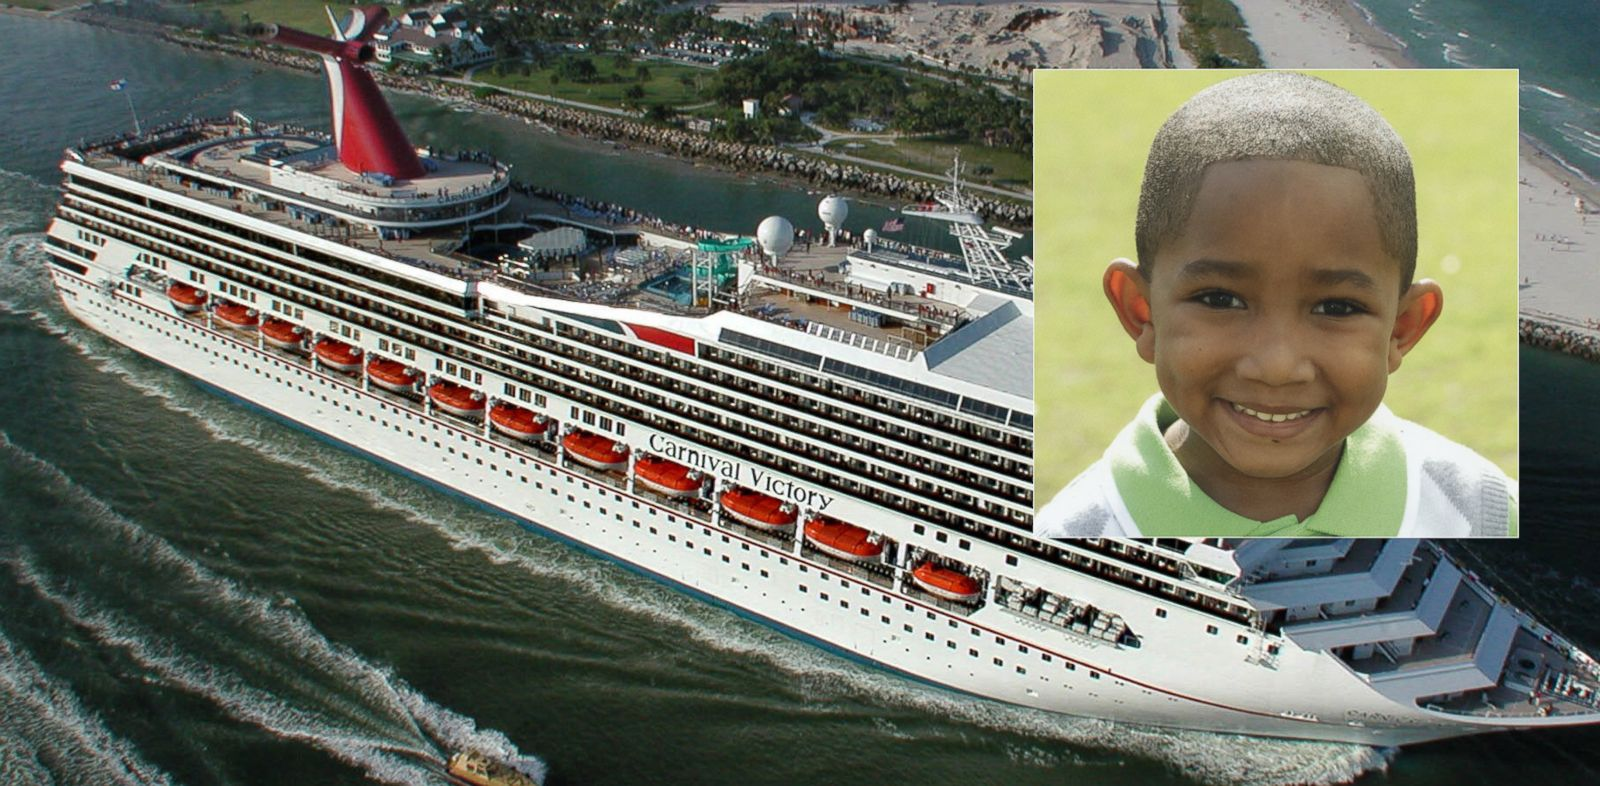 PHOTO: Inset, 6-year-old boy Qwentyn hunter drowned in one of the pools aboard a Carnival Cruise Lines ship while at sea, Oct. 13, 2013. The Carnival Victory is shown in the background in this October 2000 file photo.